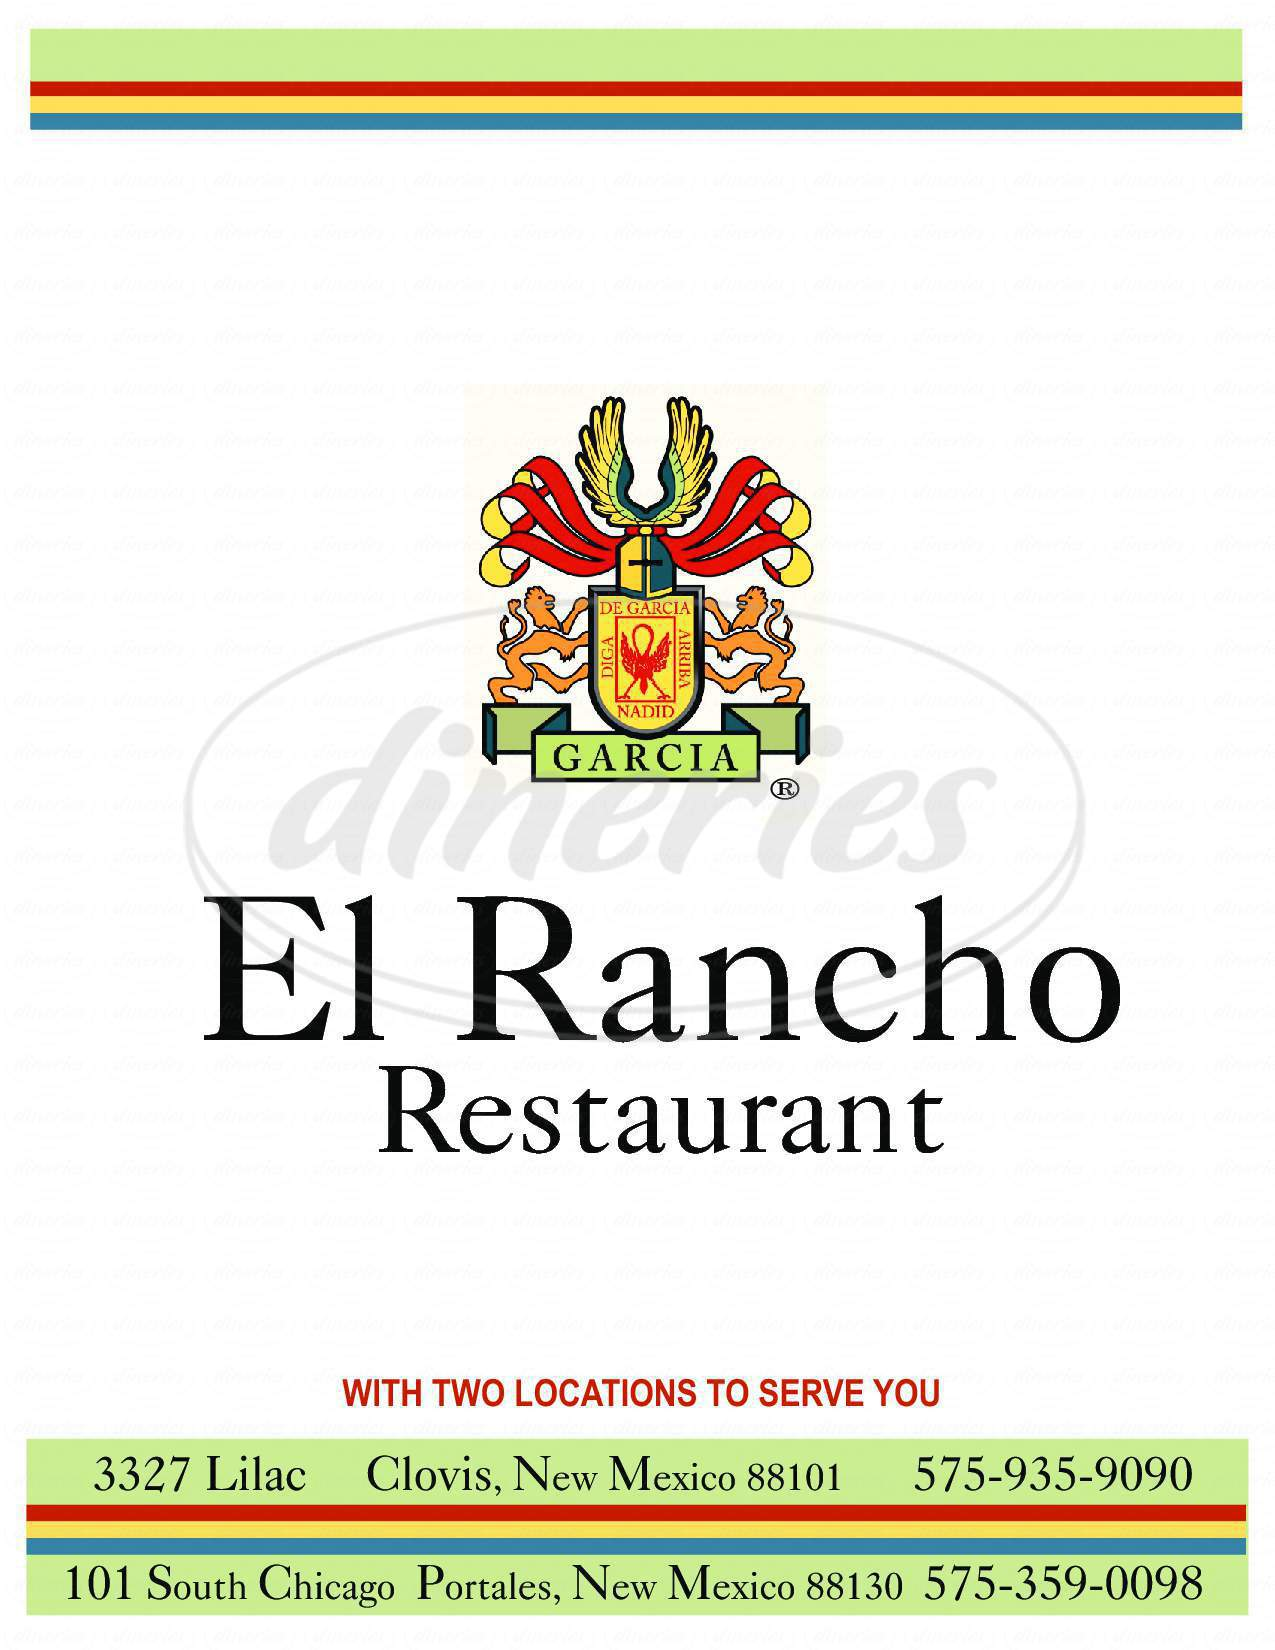 menu for El Rancho Restaurant